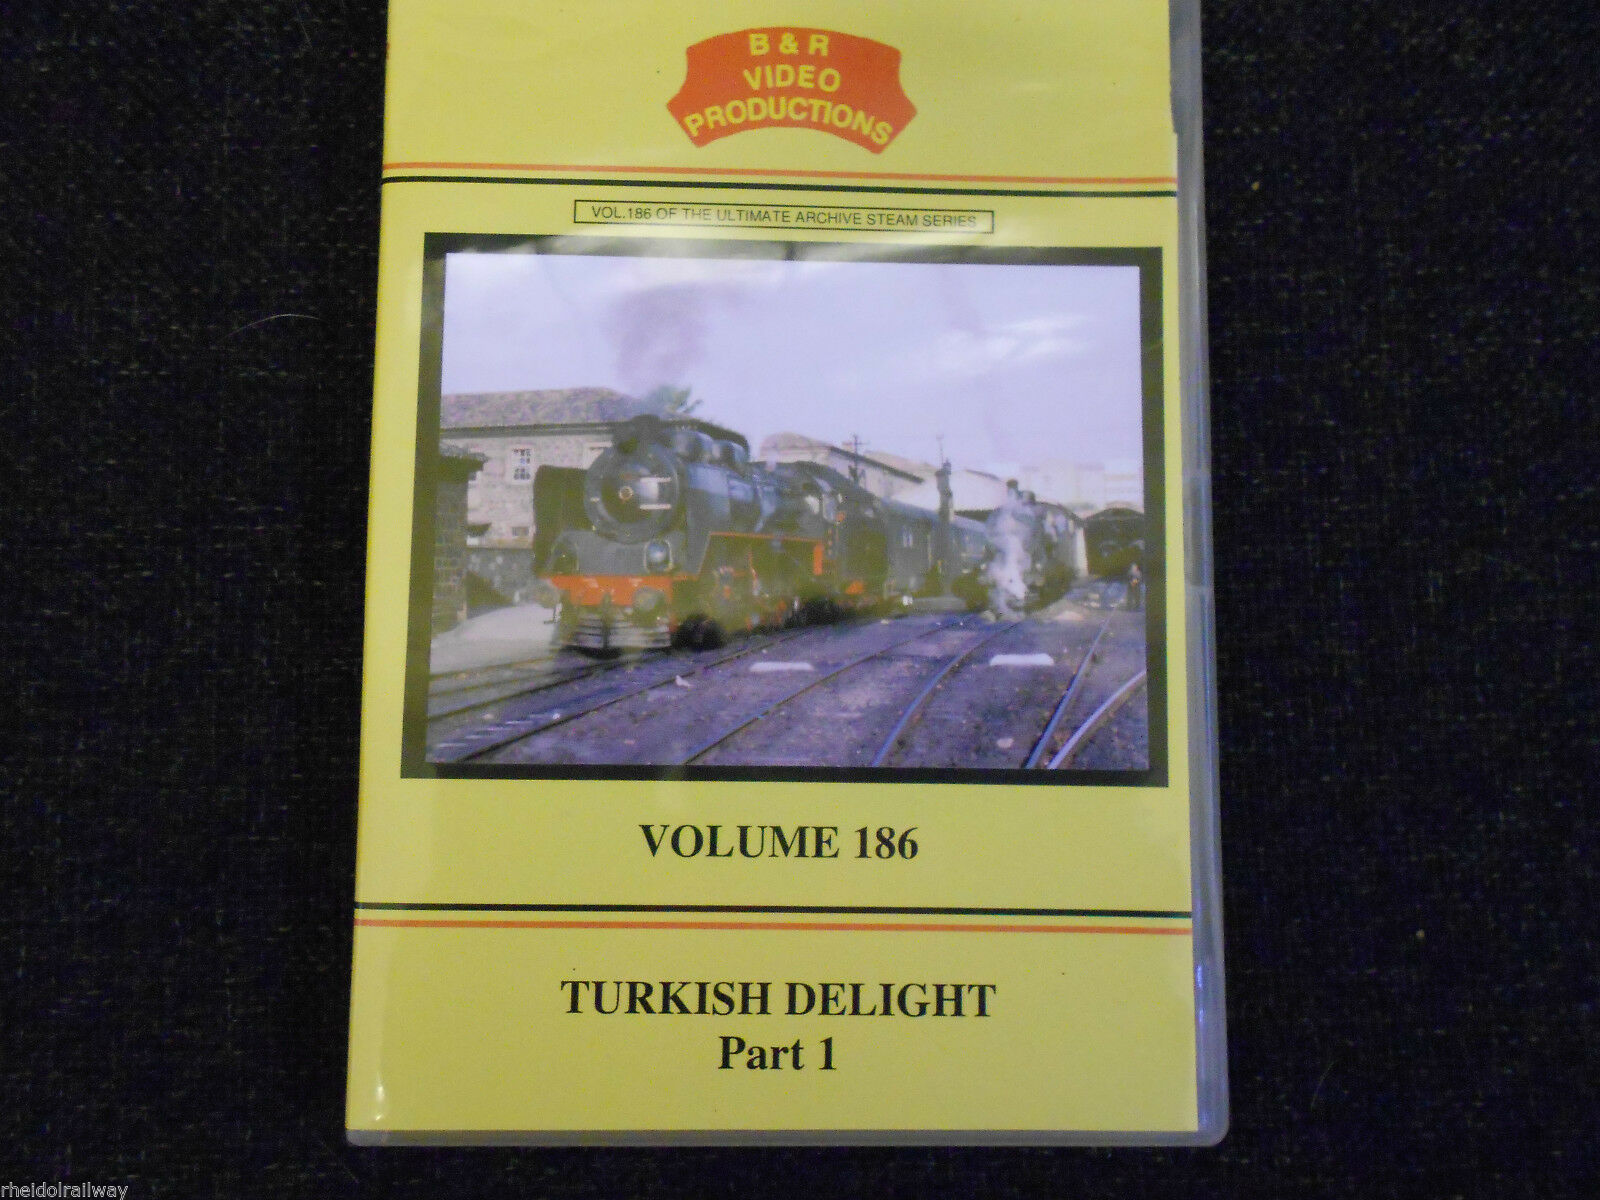 Turkish Delight, Part 1, B & R Volume 186 DVD Izmir Zonguldak Sivas konya - The Vale of Rheidol Railway